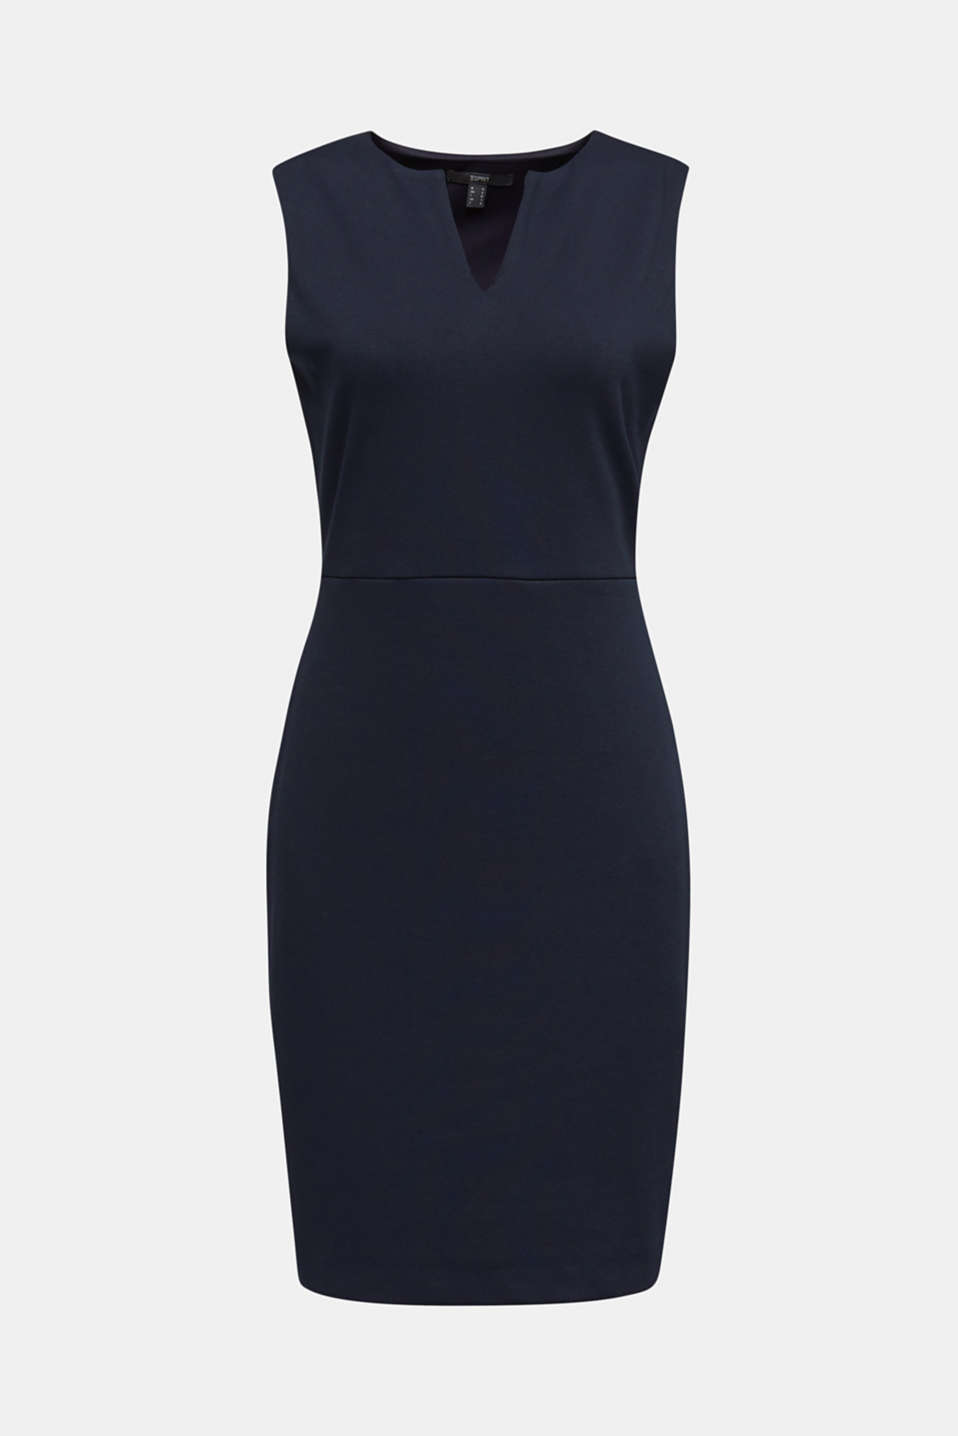 Sleeveless shift dress made of stretch jersey, NAVY, detail image number 5